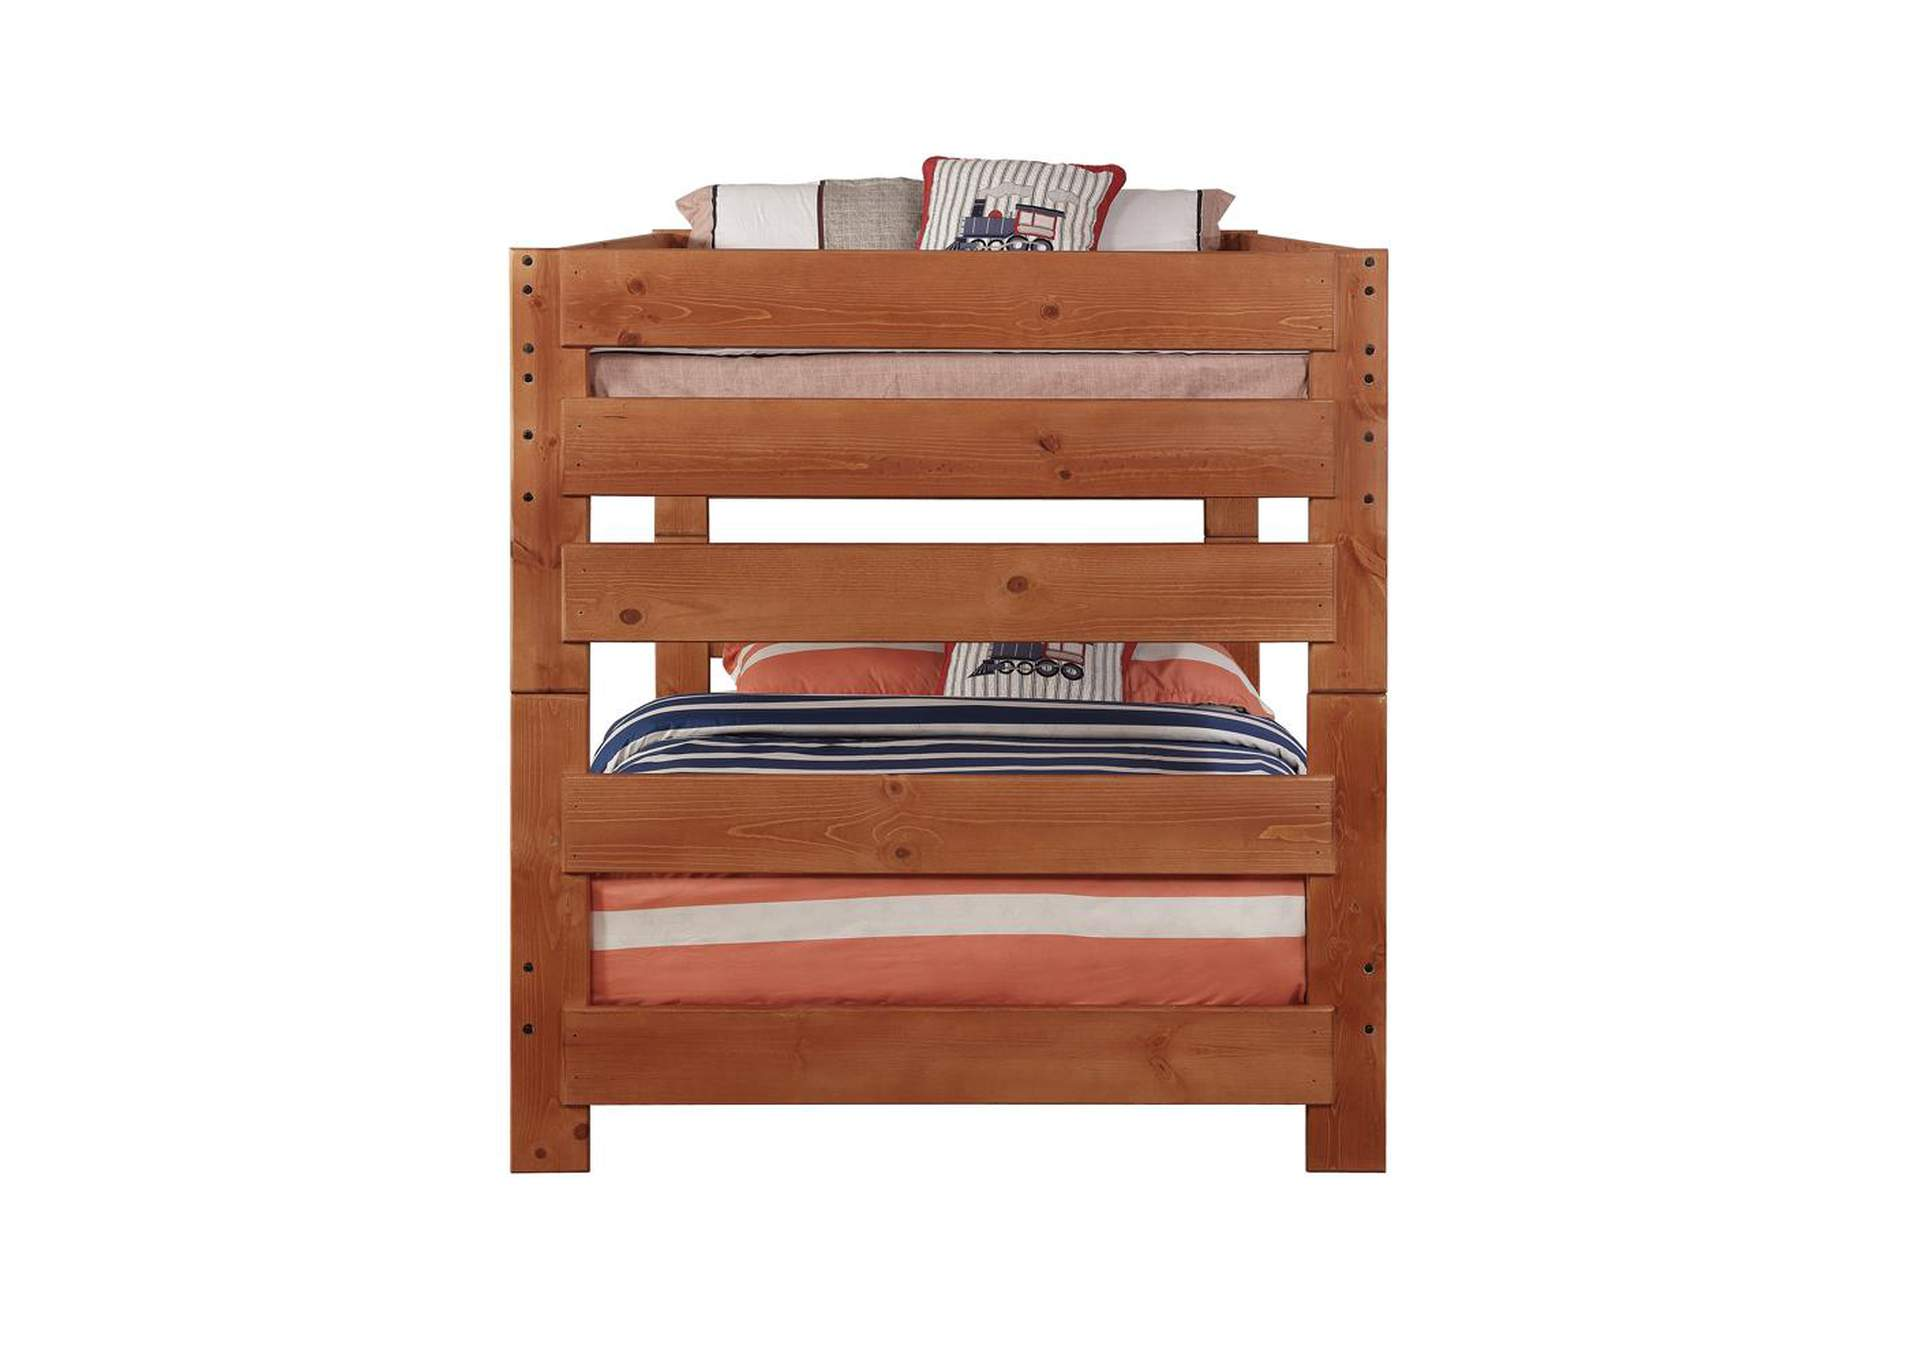 Cumin Wrangle Hill Amber Wash Full-over-Full Bunk Bed,Coaster Furniture